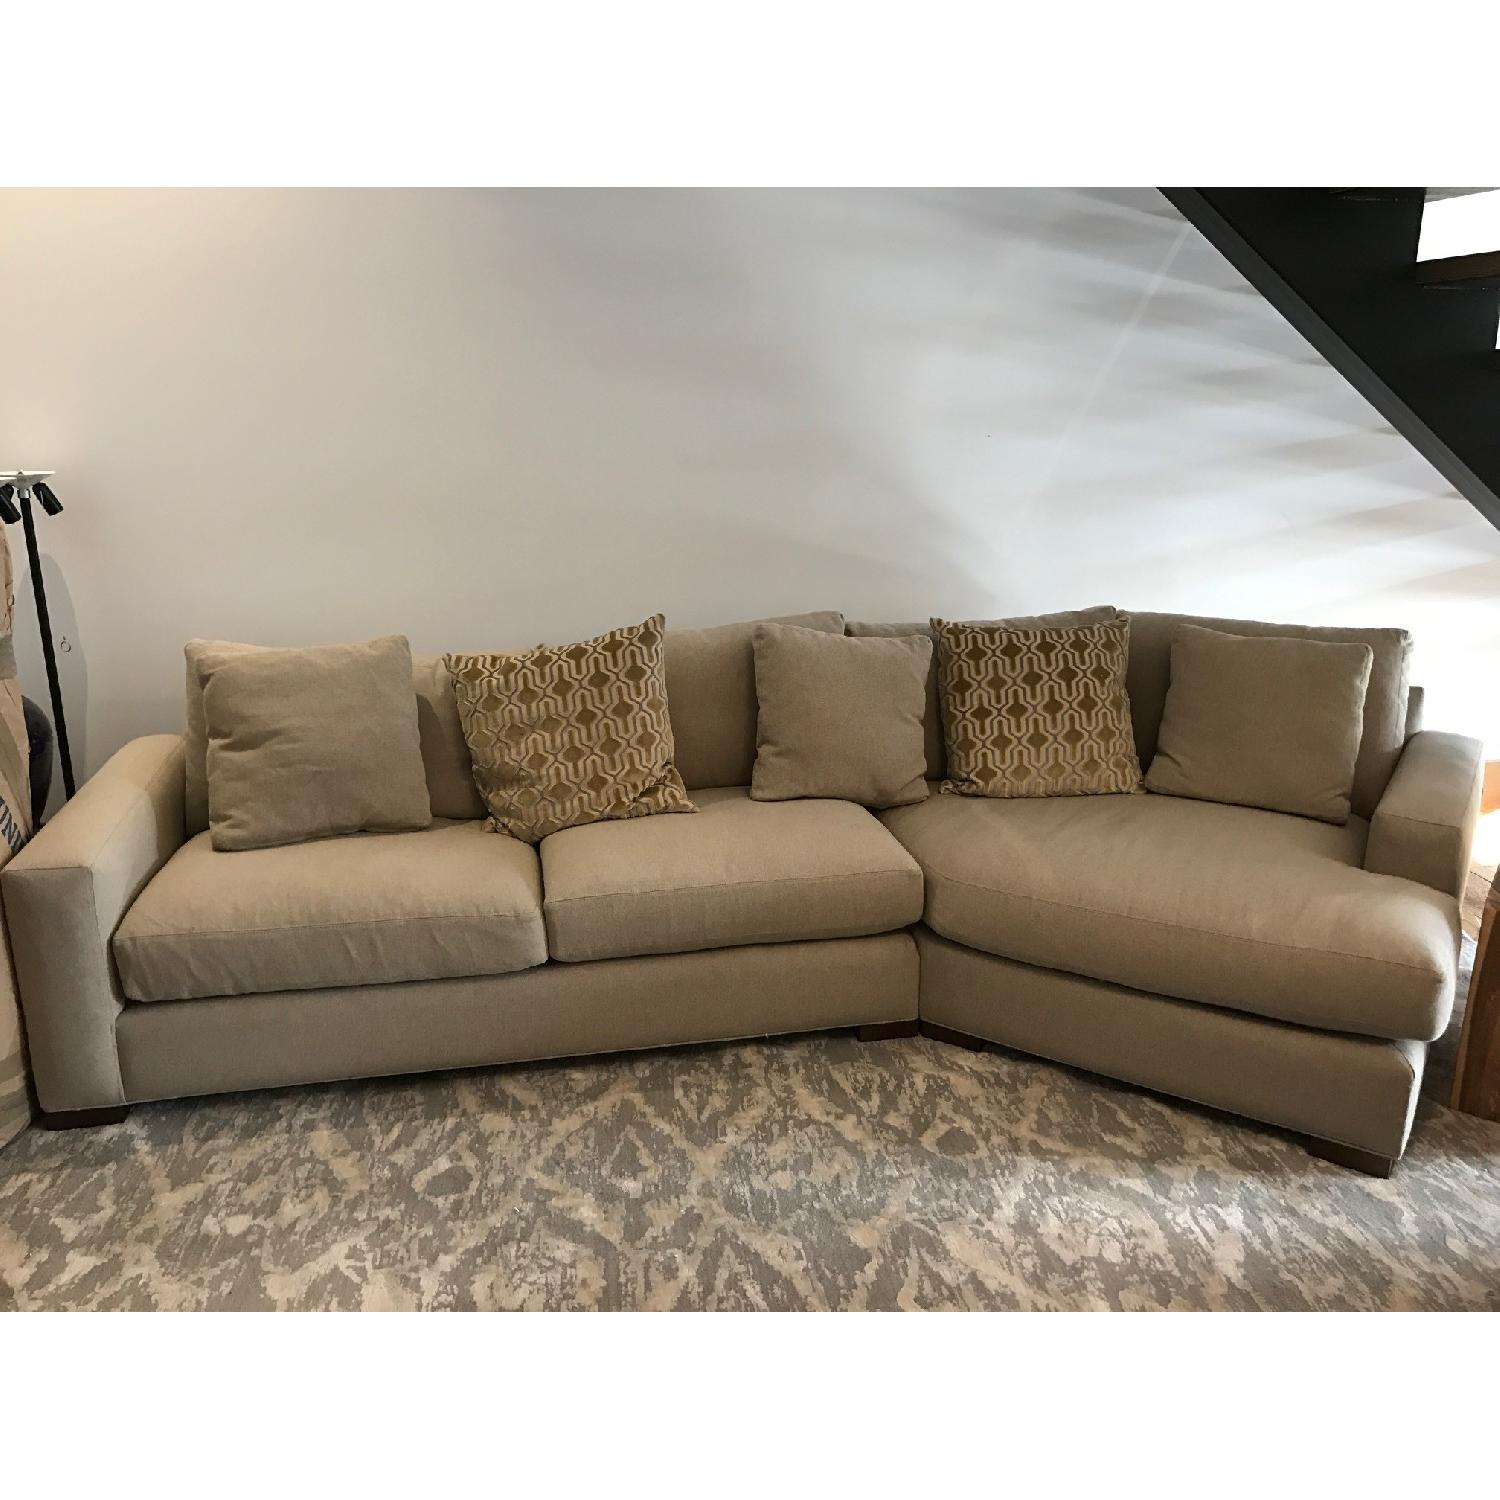 Room & Board Metro Sectional Sofa - image-2